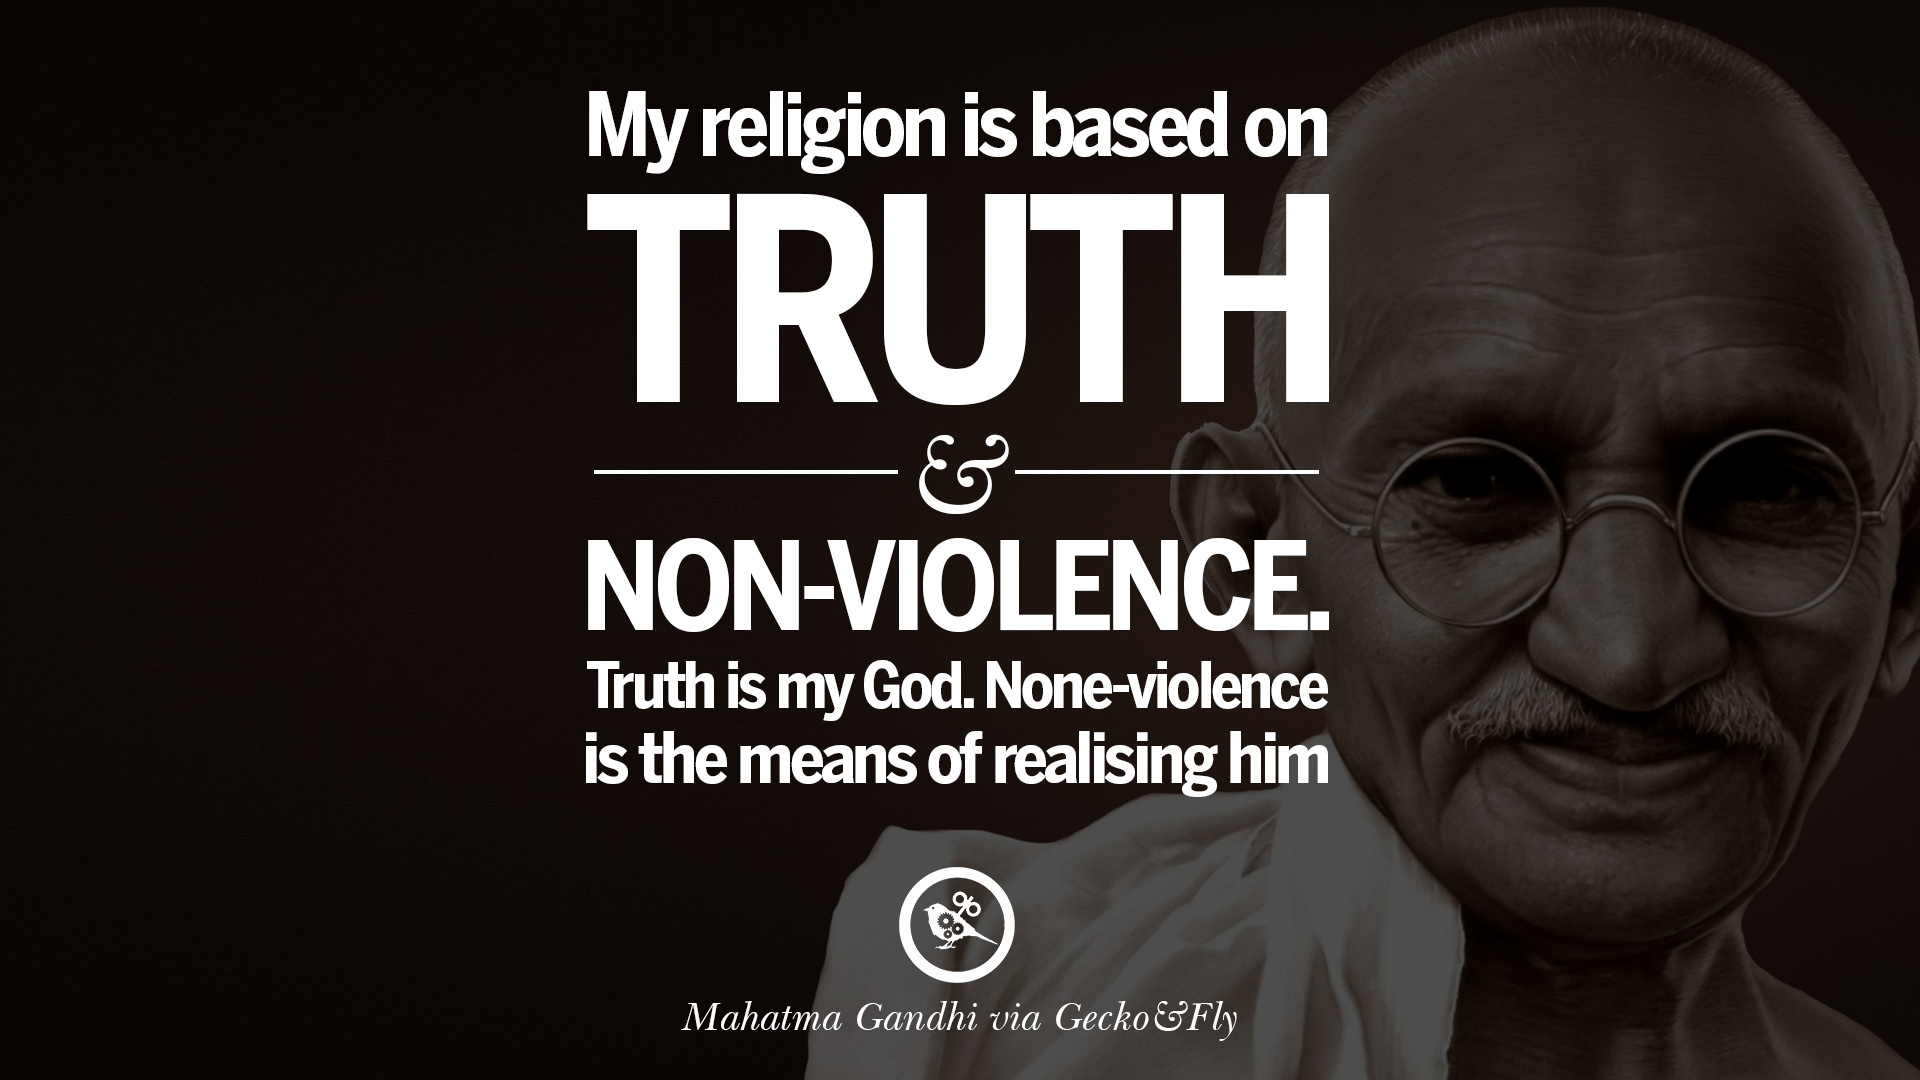 Mahatma Gandhi Quotes And Frases On Peace Protest And Civil - Gandhi religion